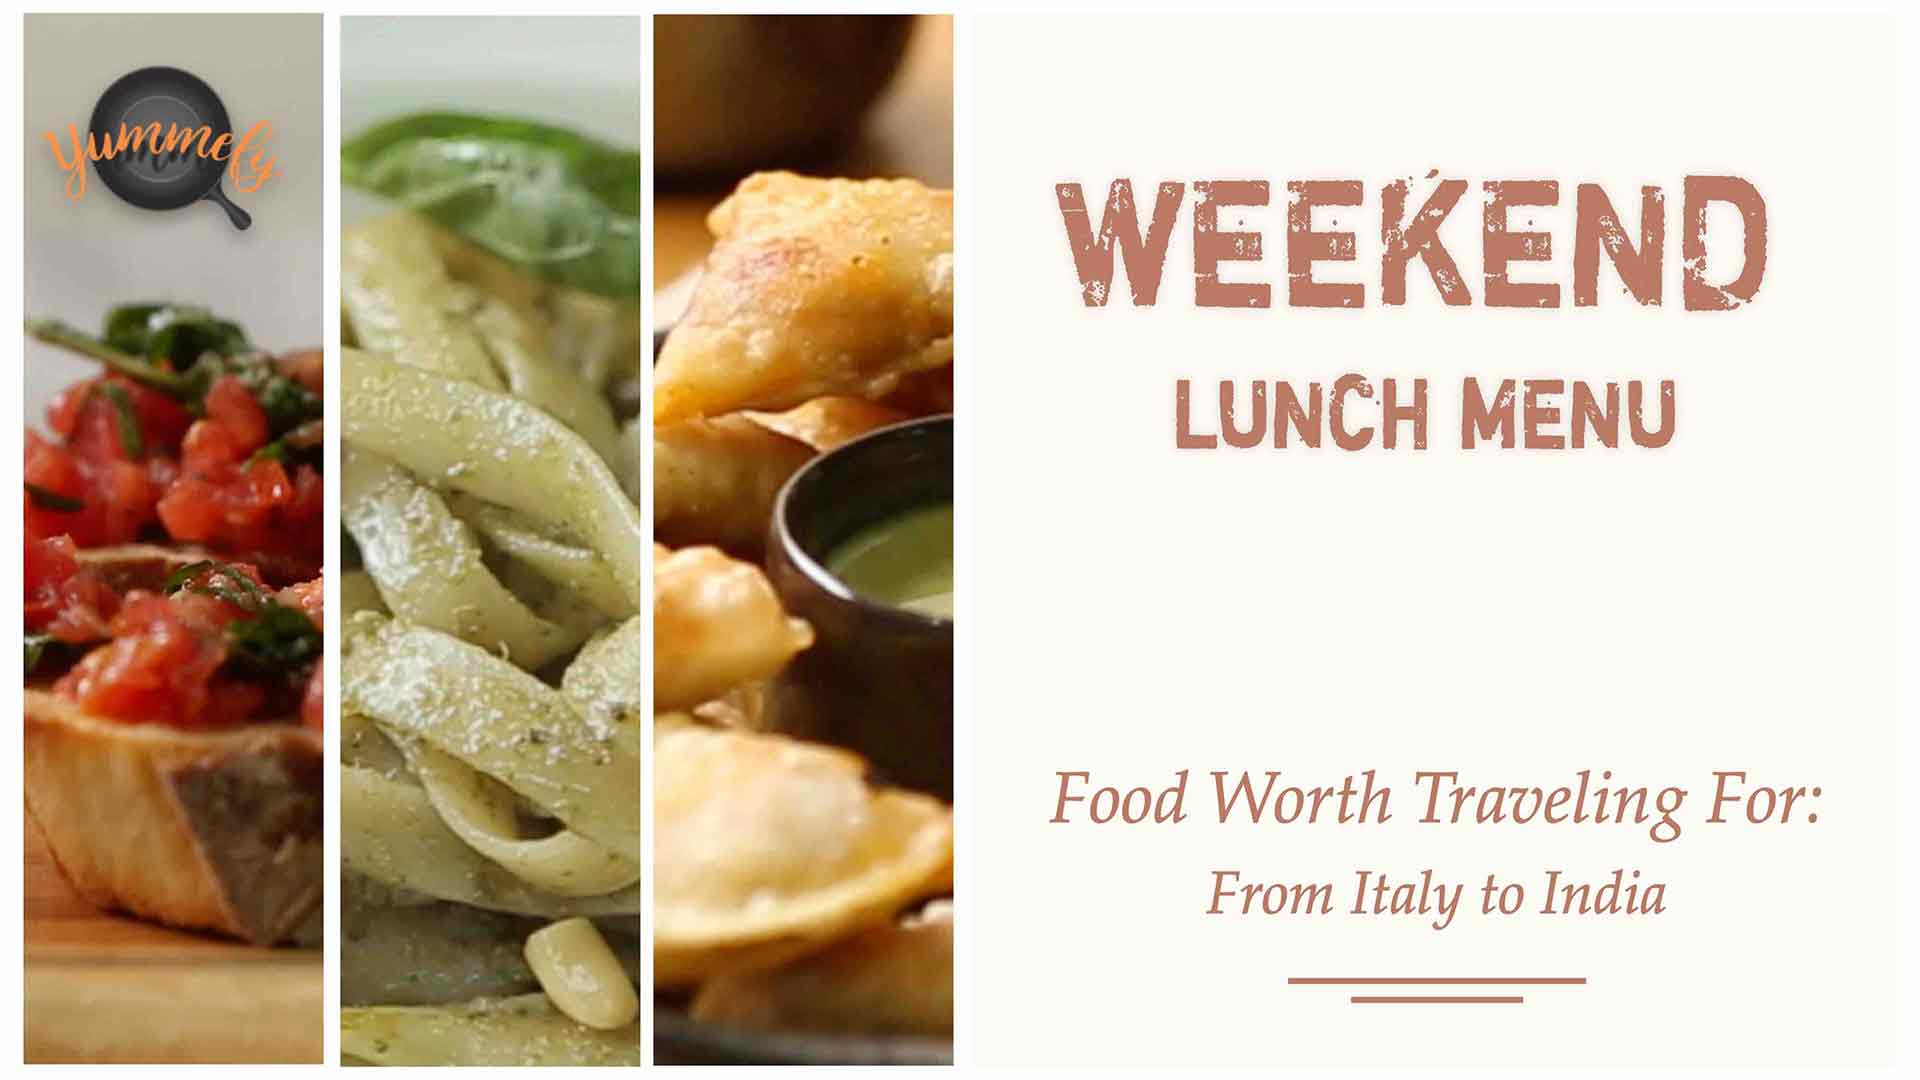 Weekend Lunch Menu | Italy to India